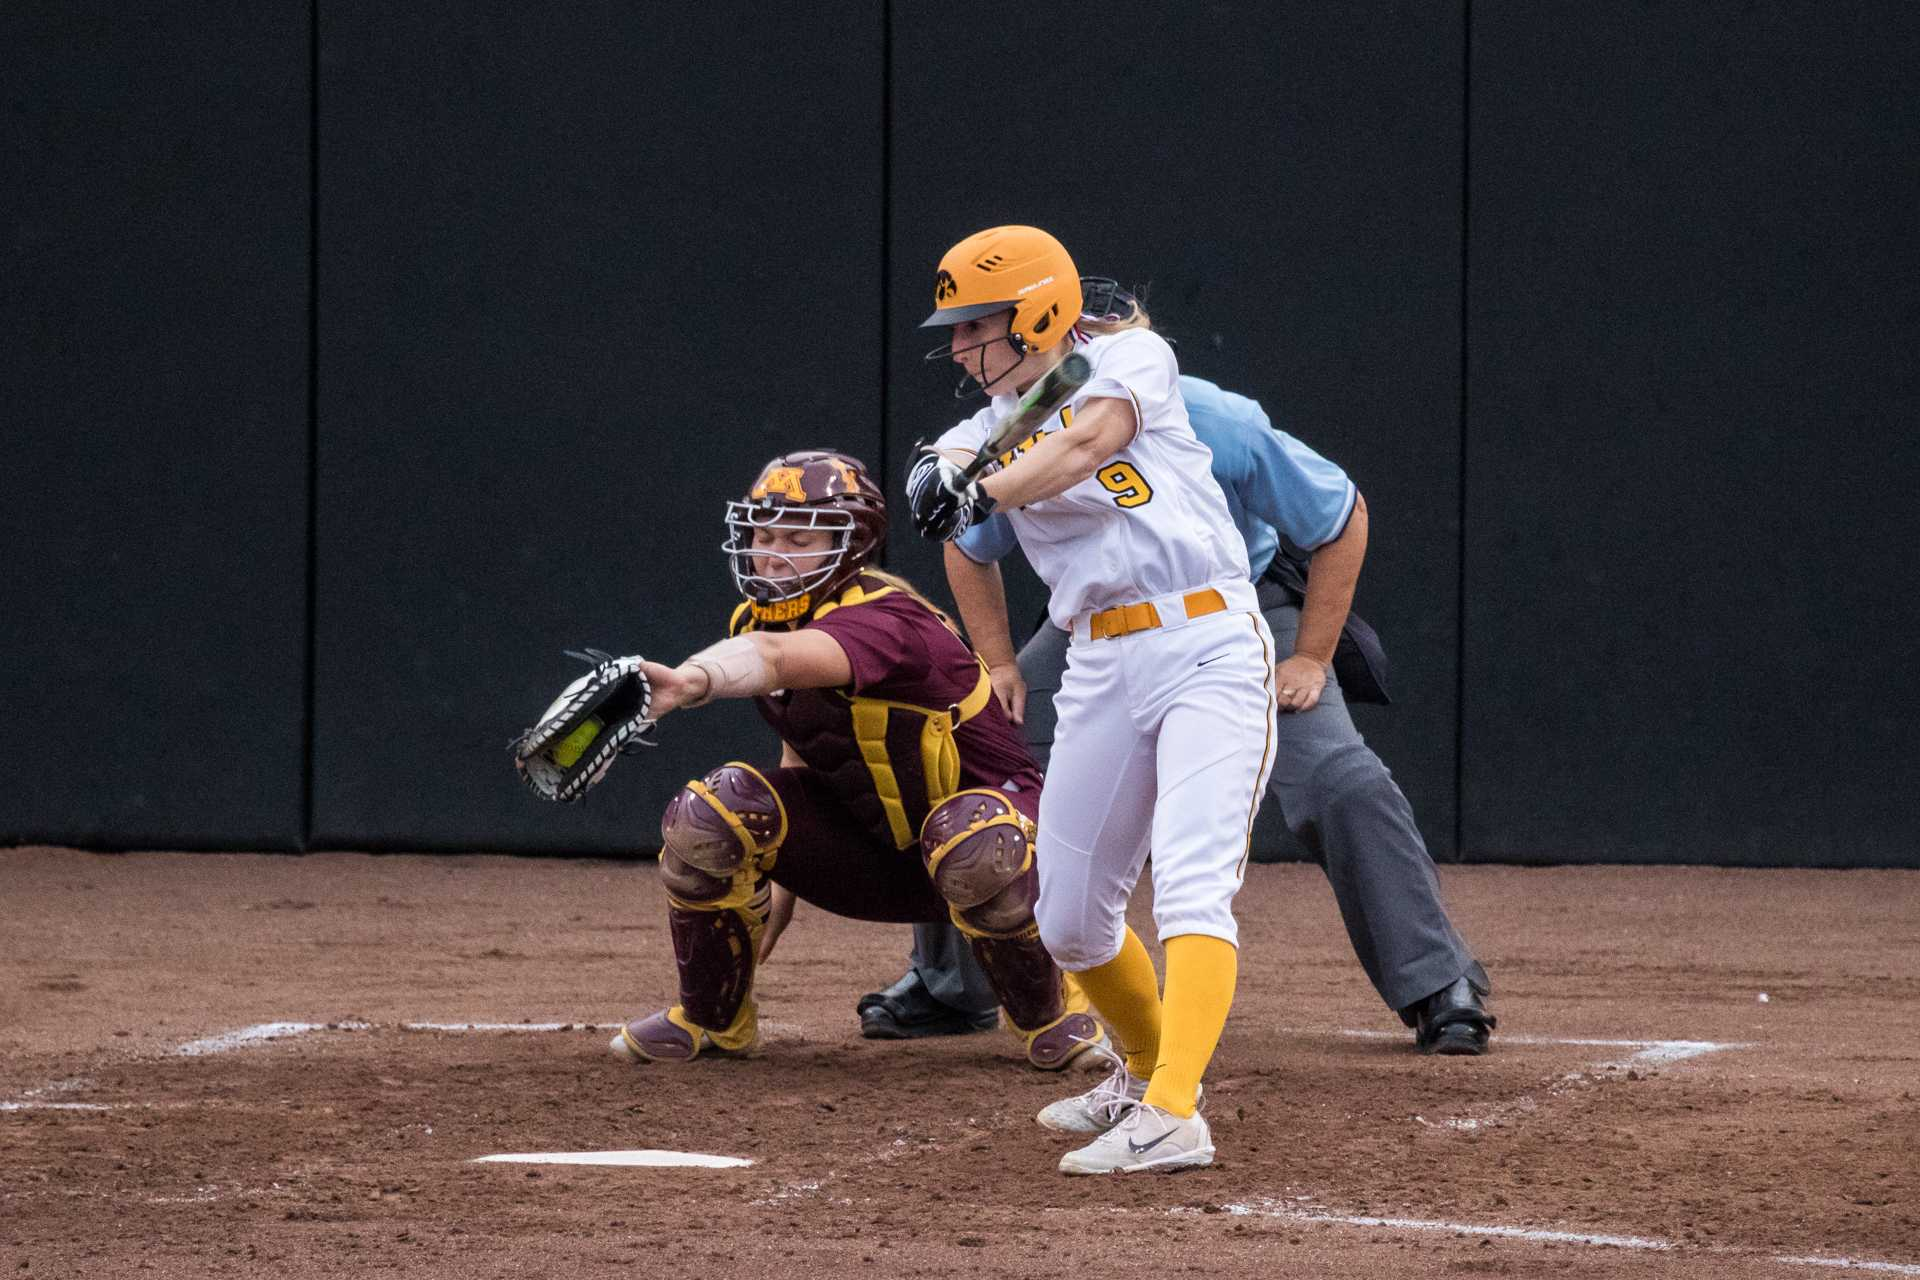 Photos: Iowa softball vs Minnesota